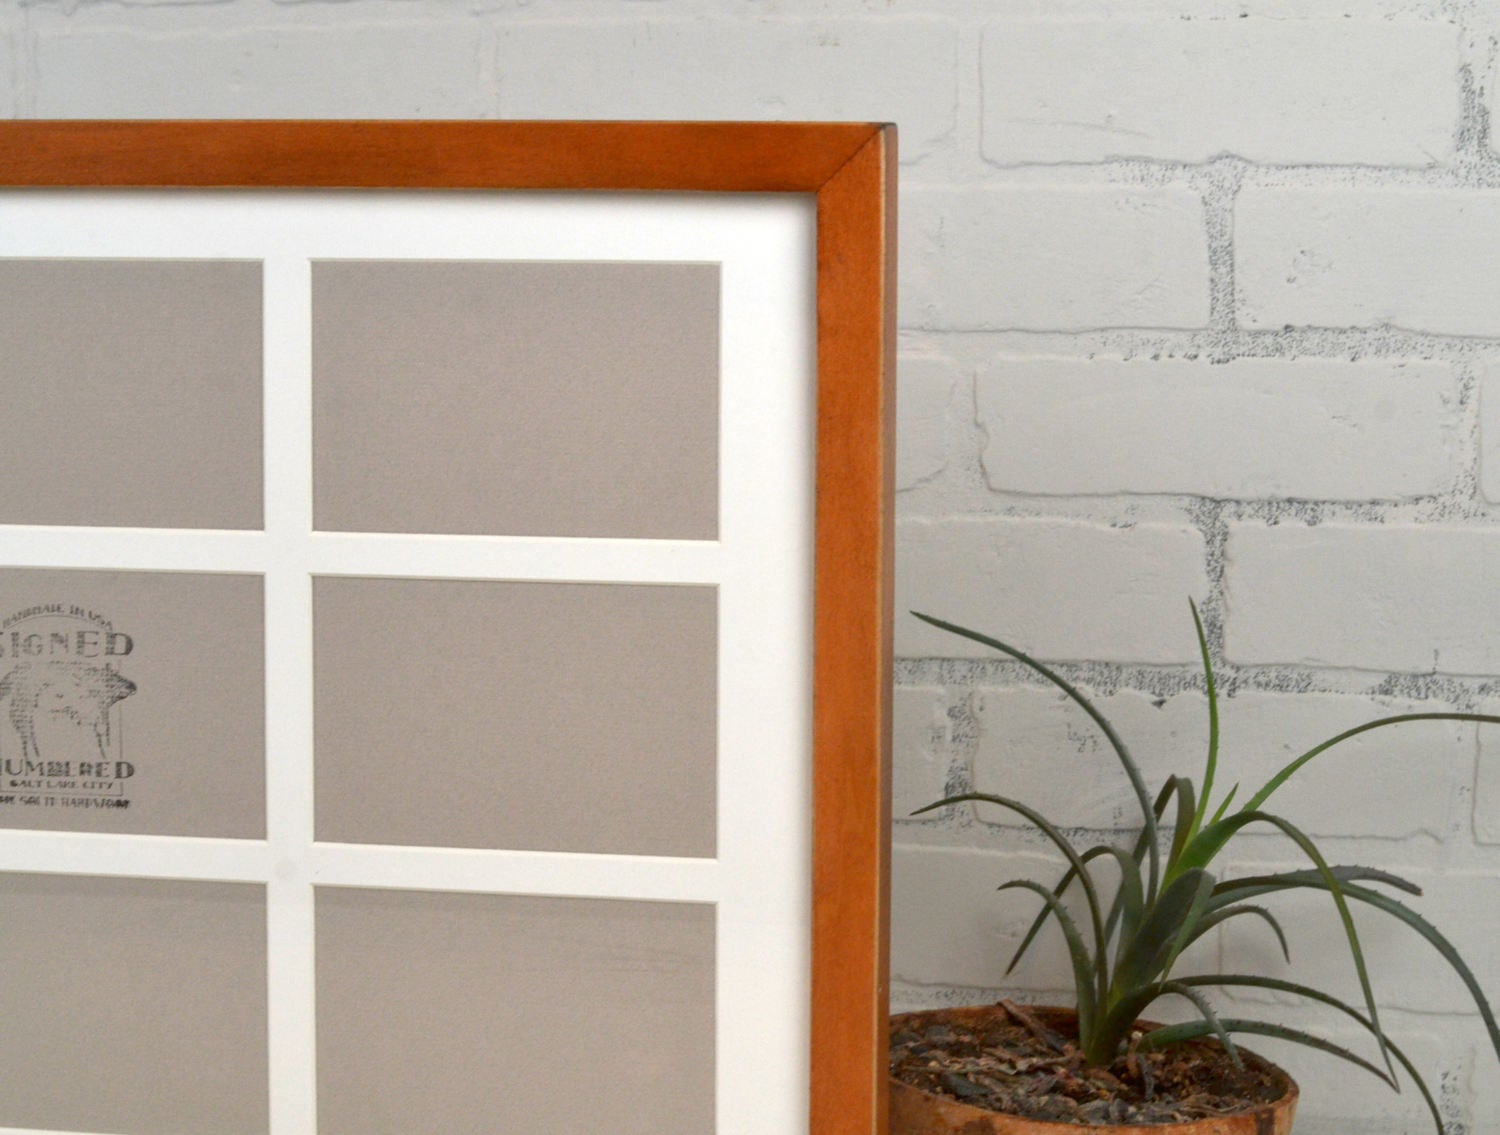 Collage Frame 15x22 1x1 Flat Style With Mat Windows For 9 4x6